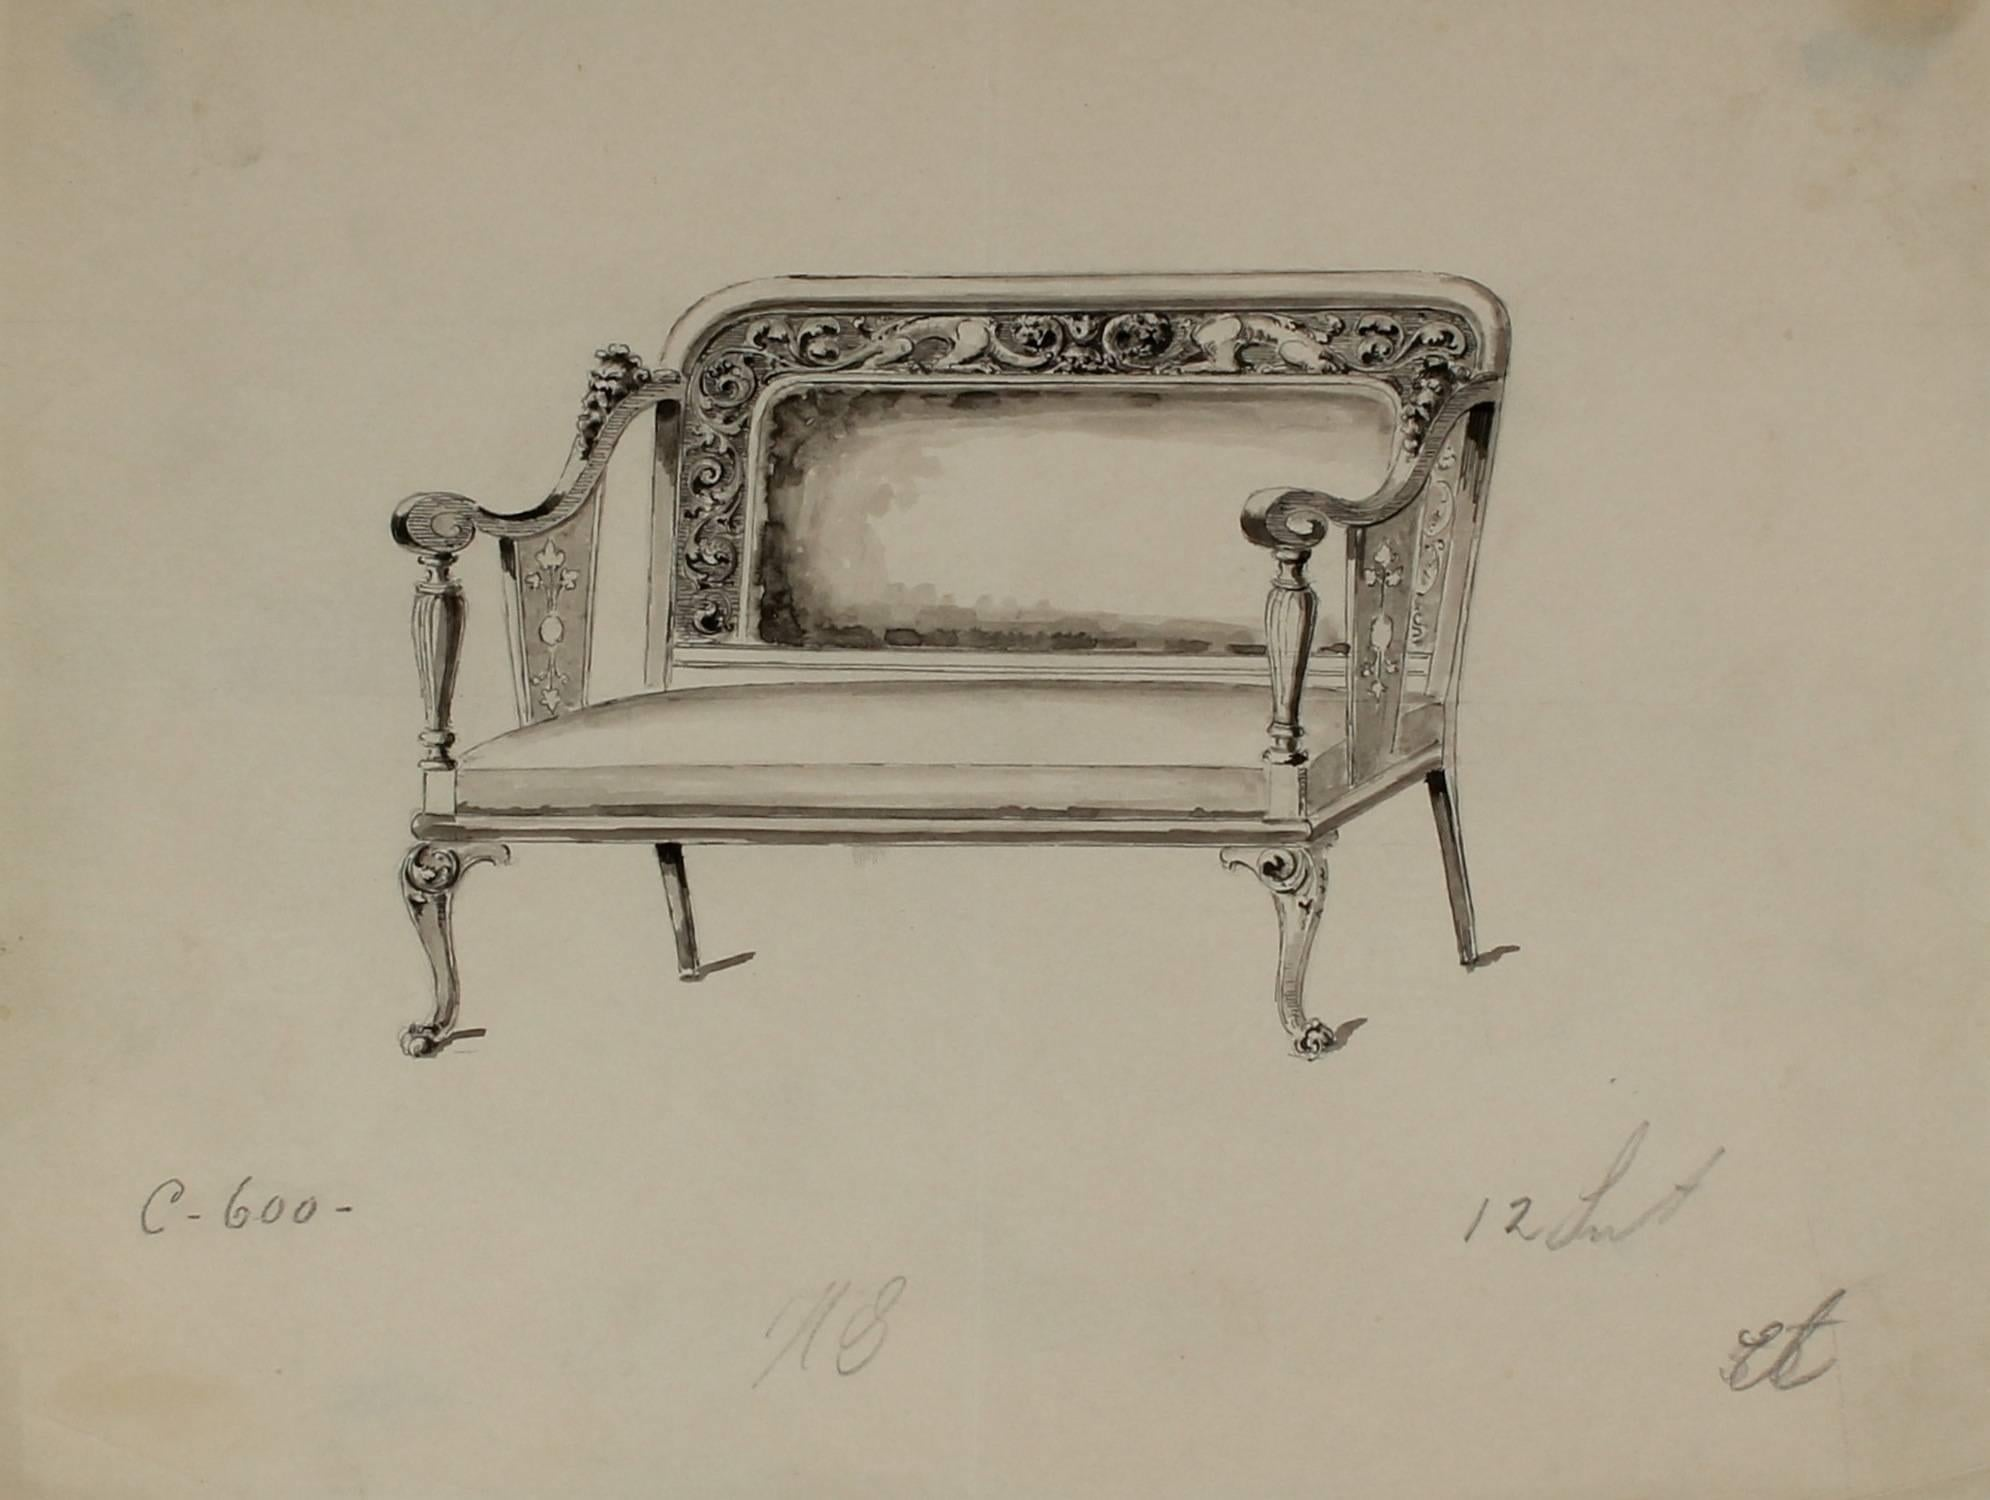 Study of a Settee, Ink and Graphite, Circa 1920s